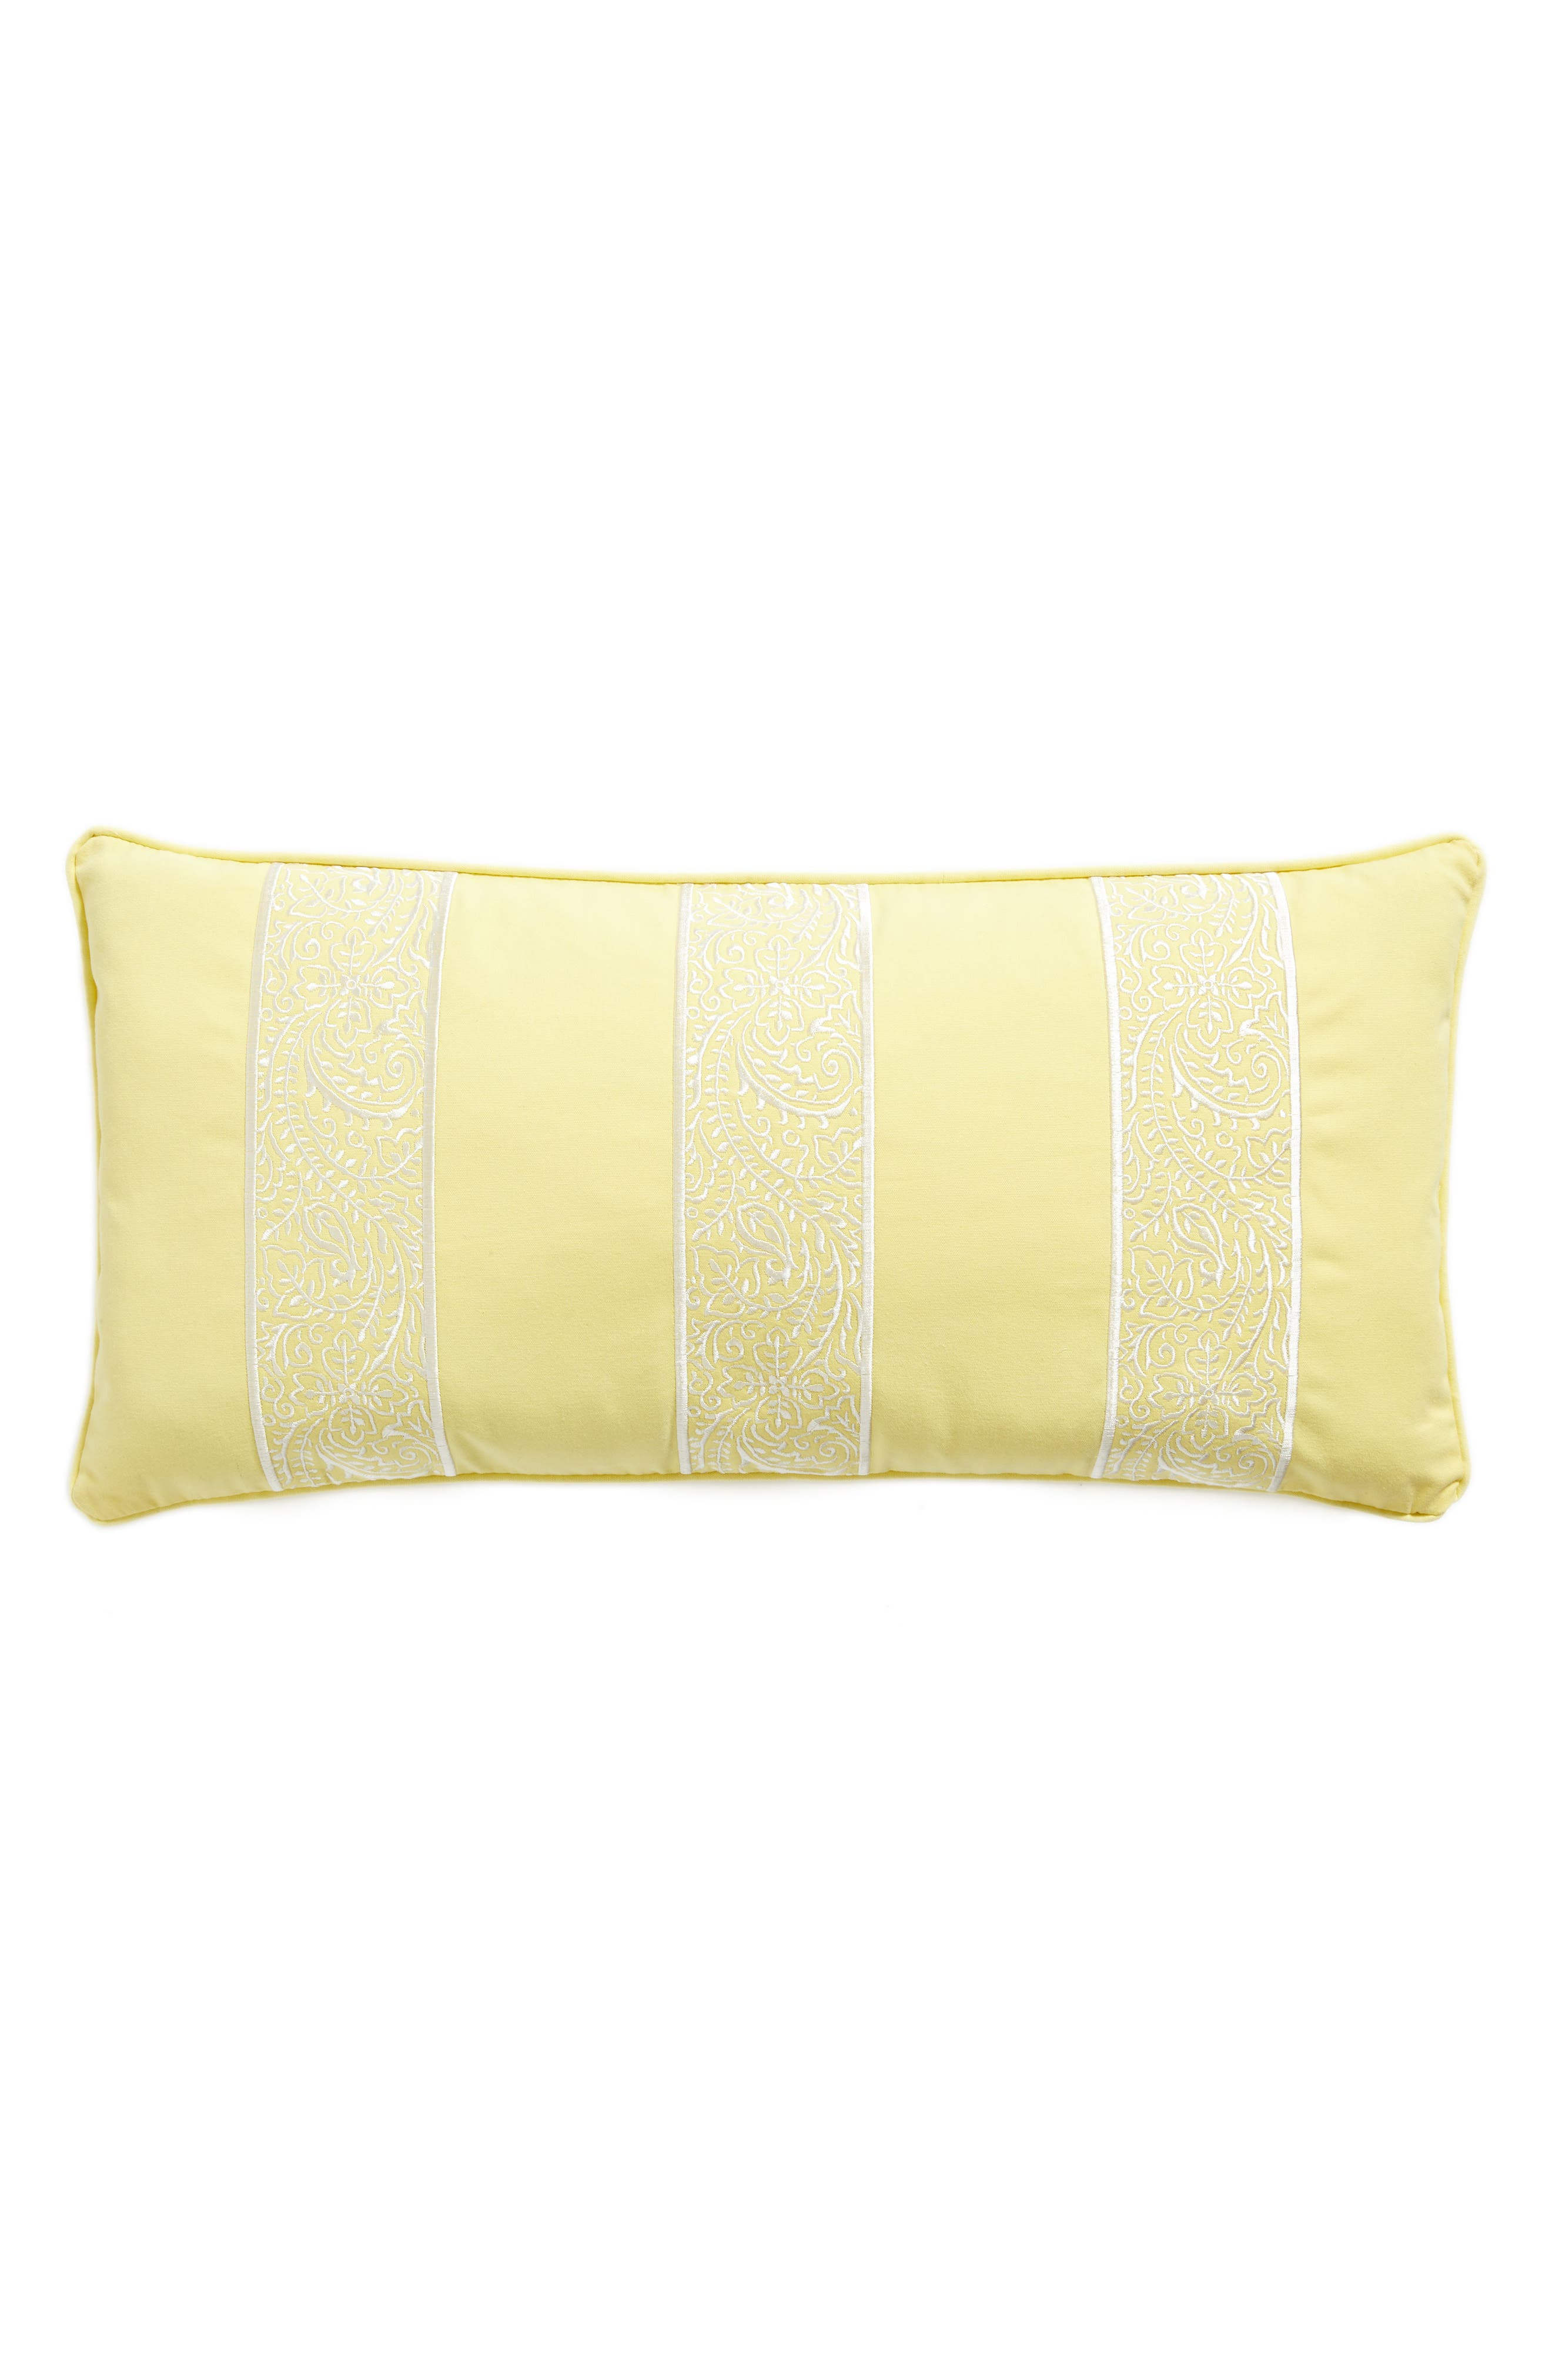 Main Image - Levtex Remie Embroidered Pillow